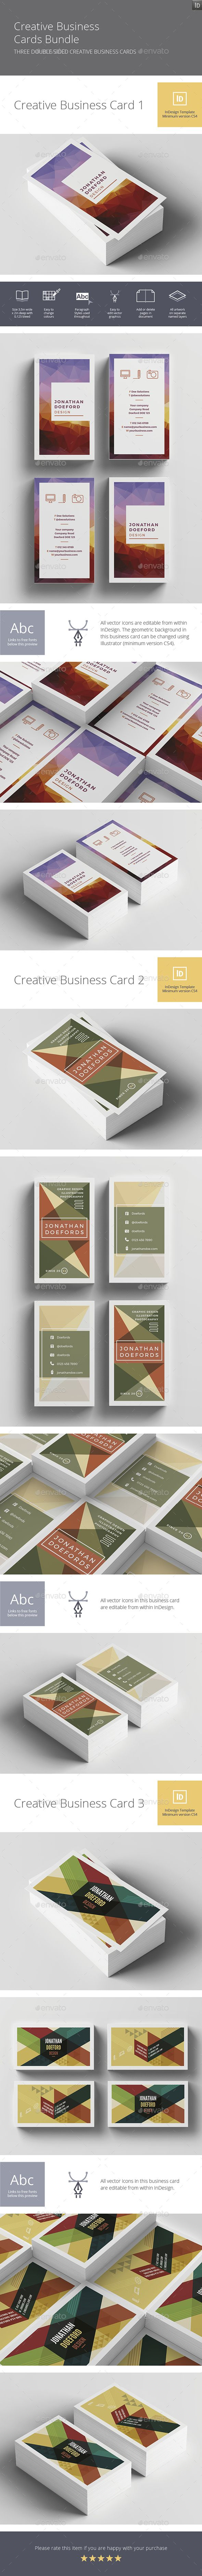 Creative business cards bundle indesign template phone icon cog creative business cards bundle indesign template phone icon cog icon download reheart Gallery